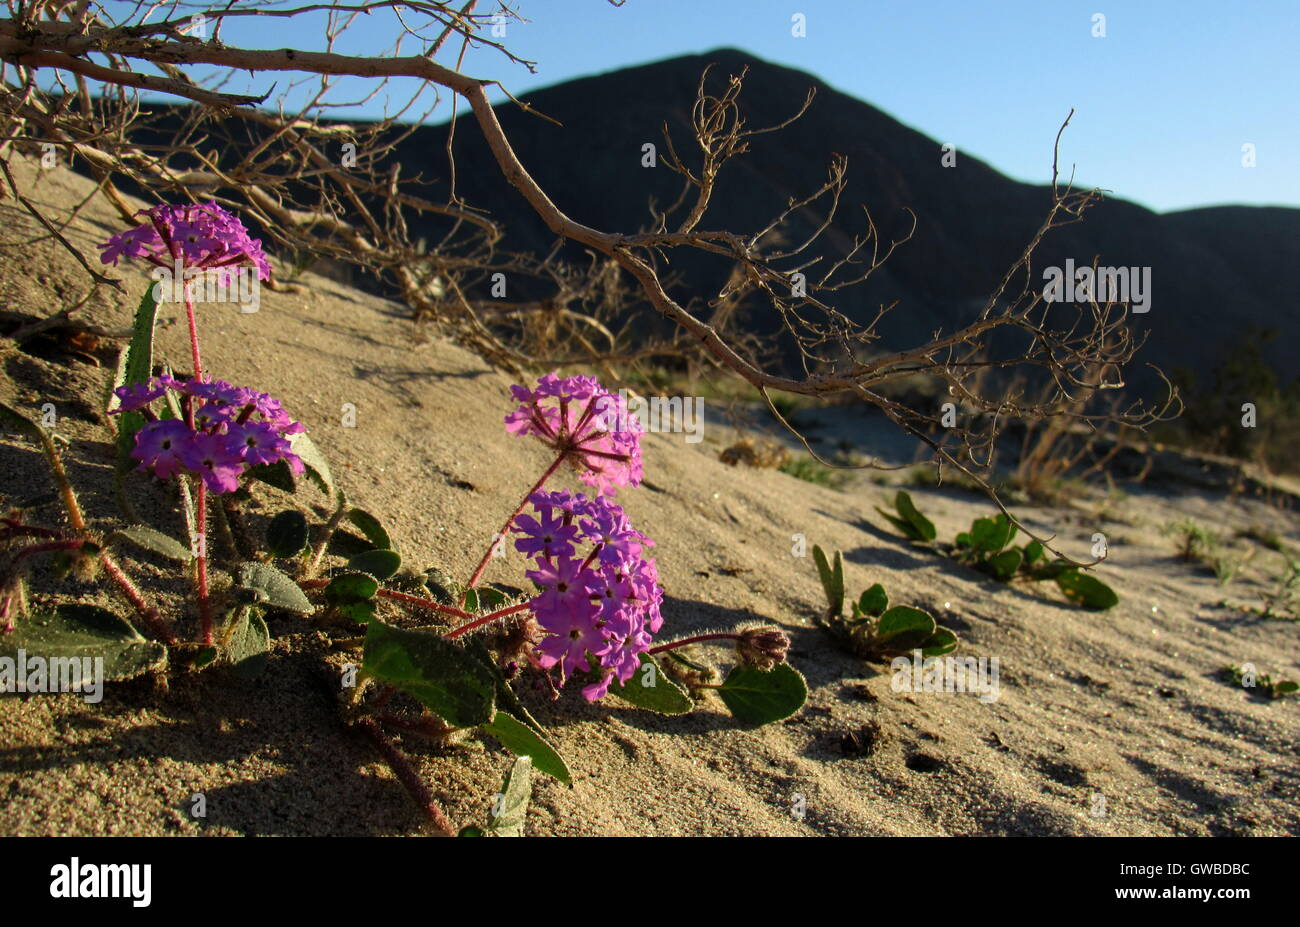 Desert Sand Pink and Purple Verbena wildflowers on a san dune in Anza Borrego Desert State Park California - Stock Image